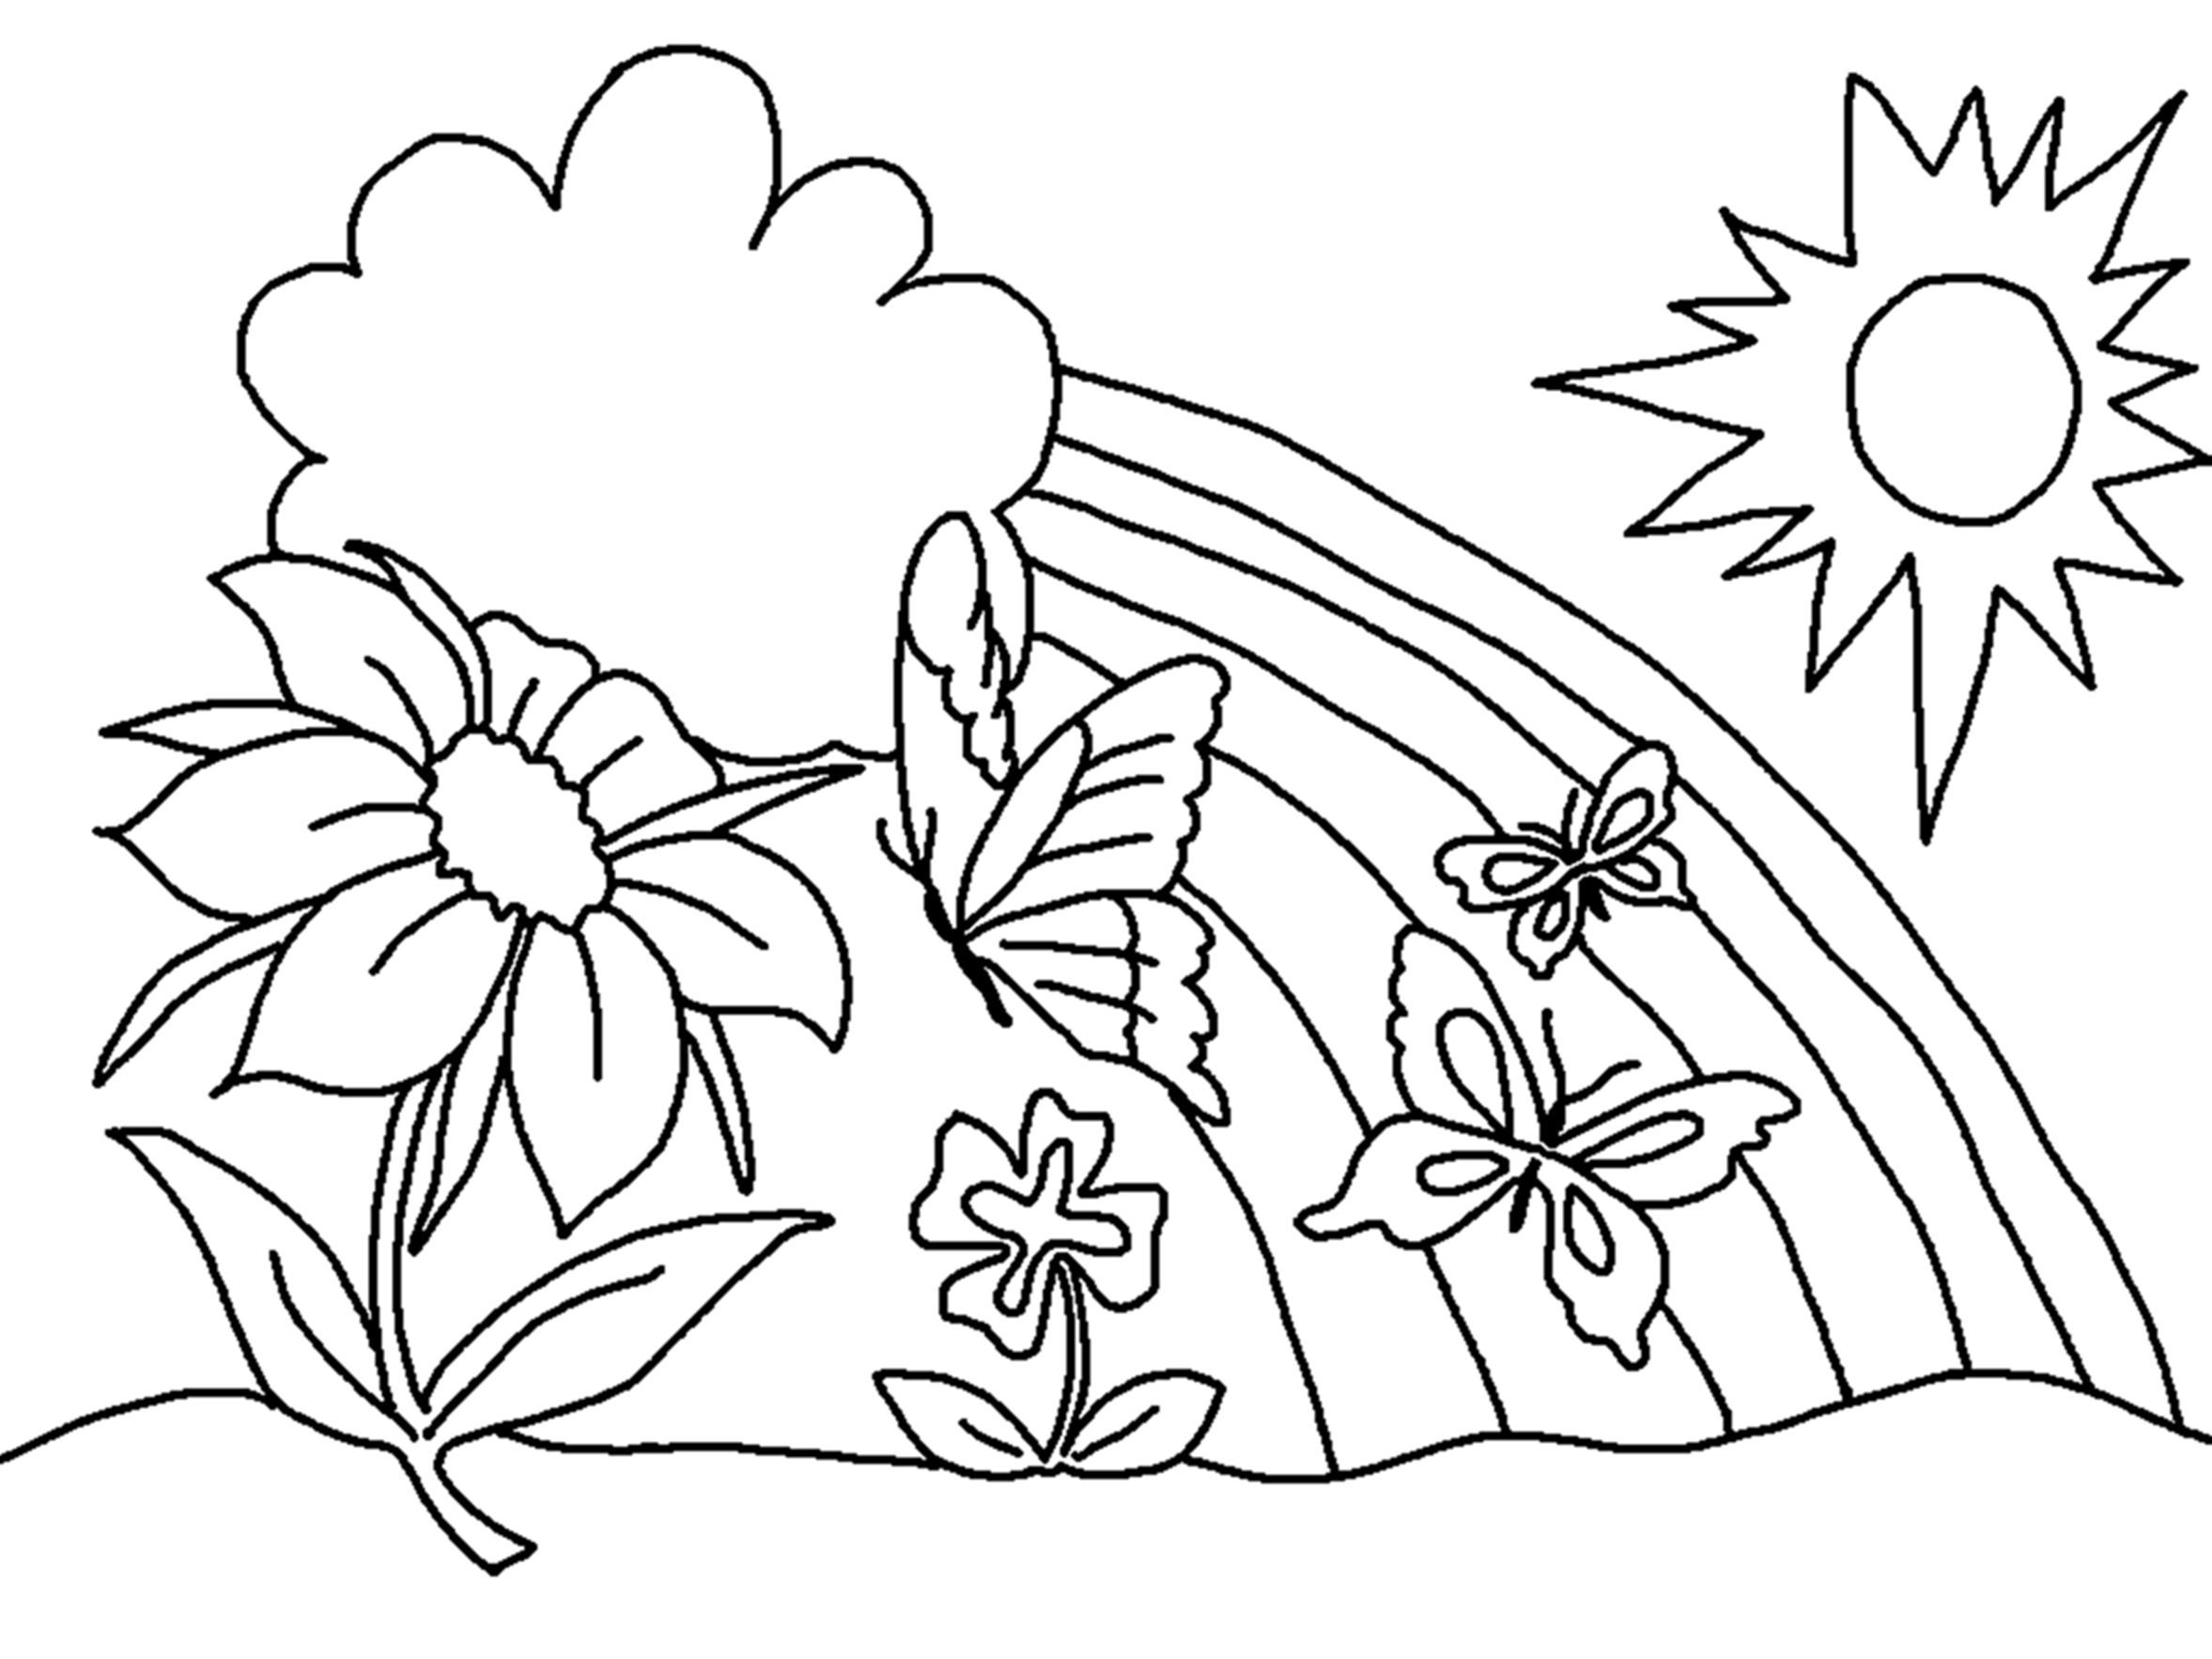 Flowers Coloring Pages For Free Printable Flower Best